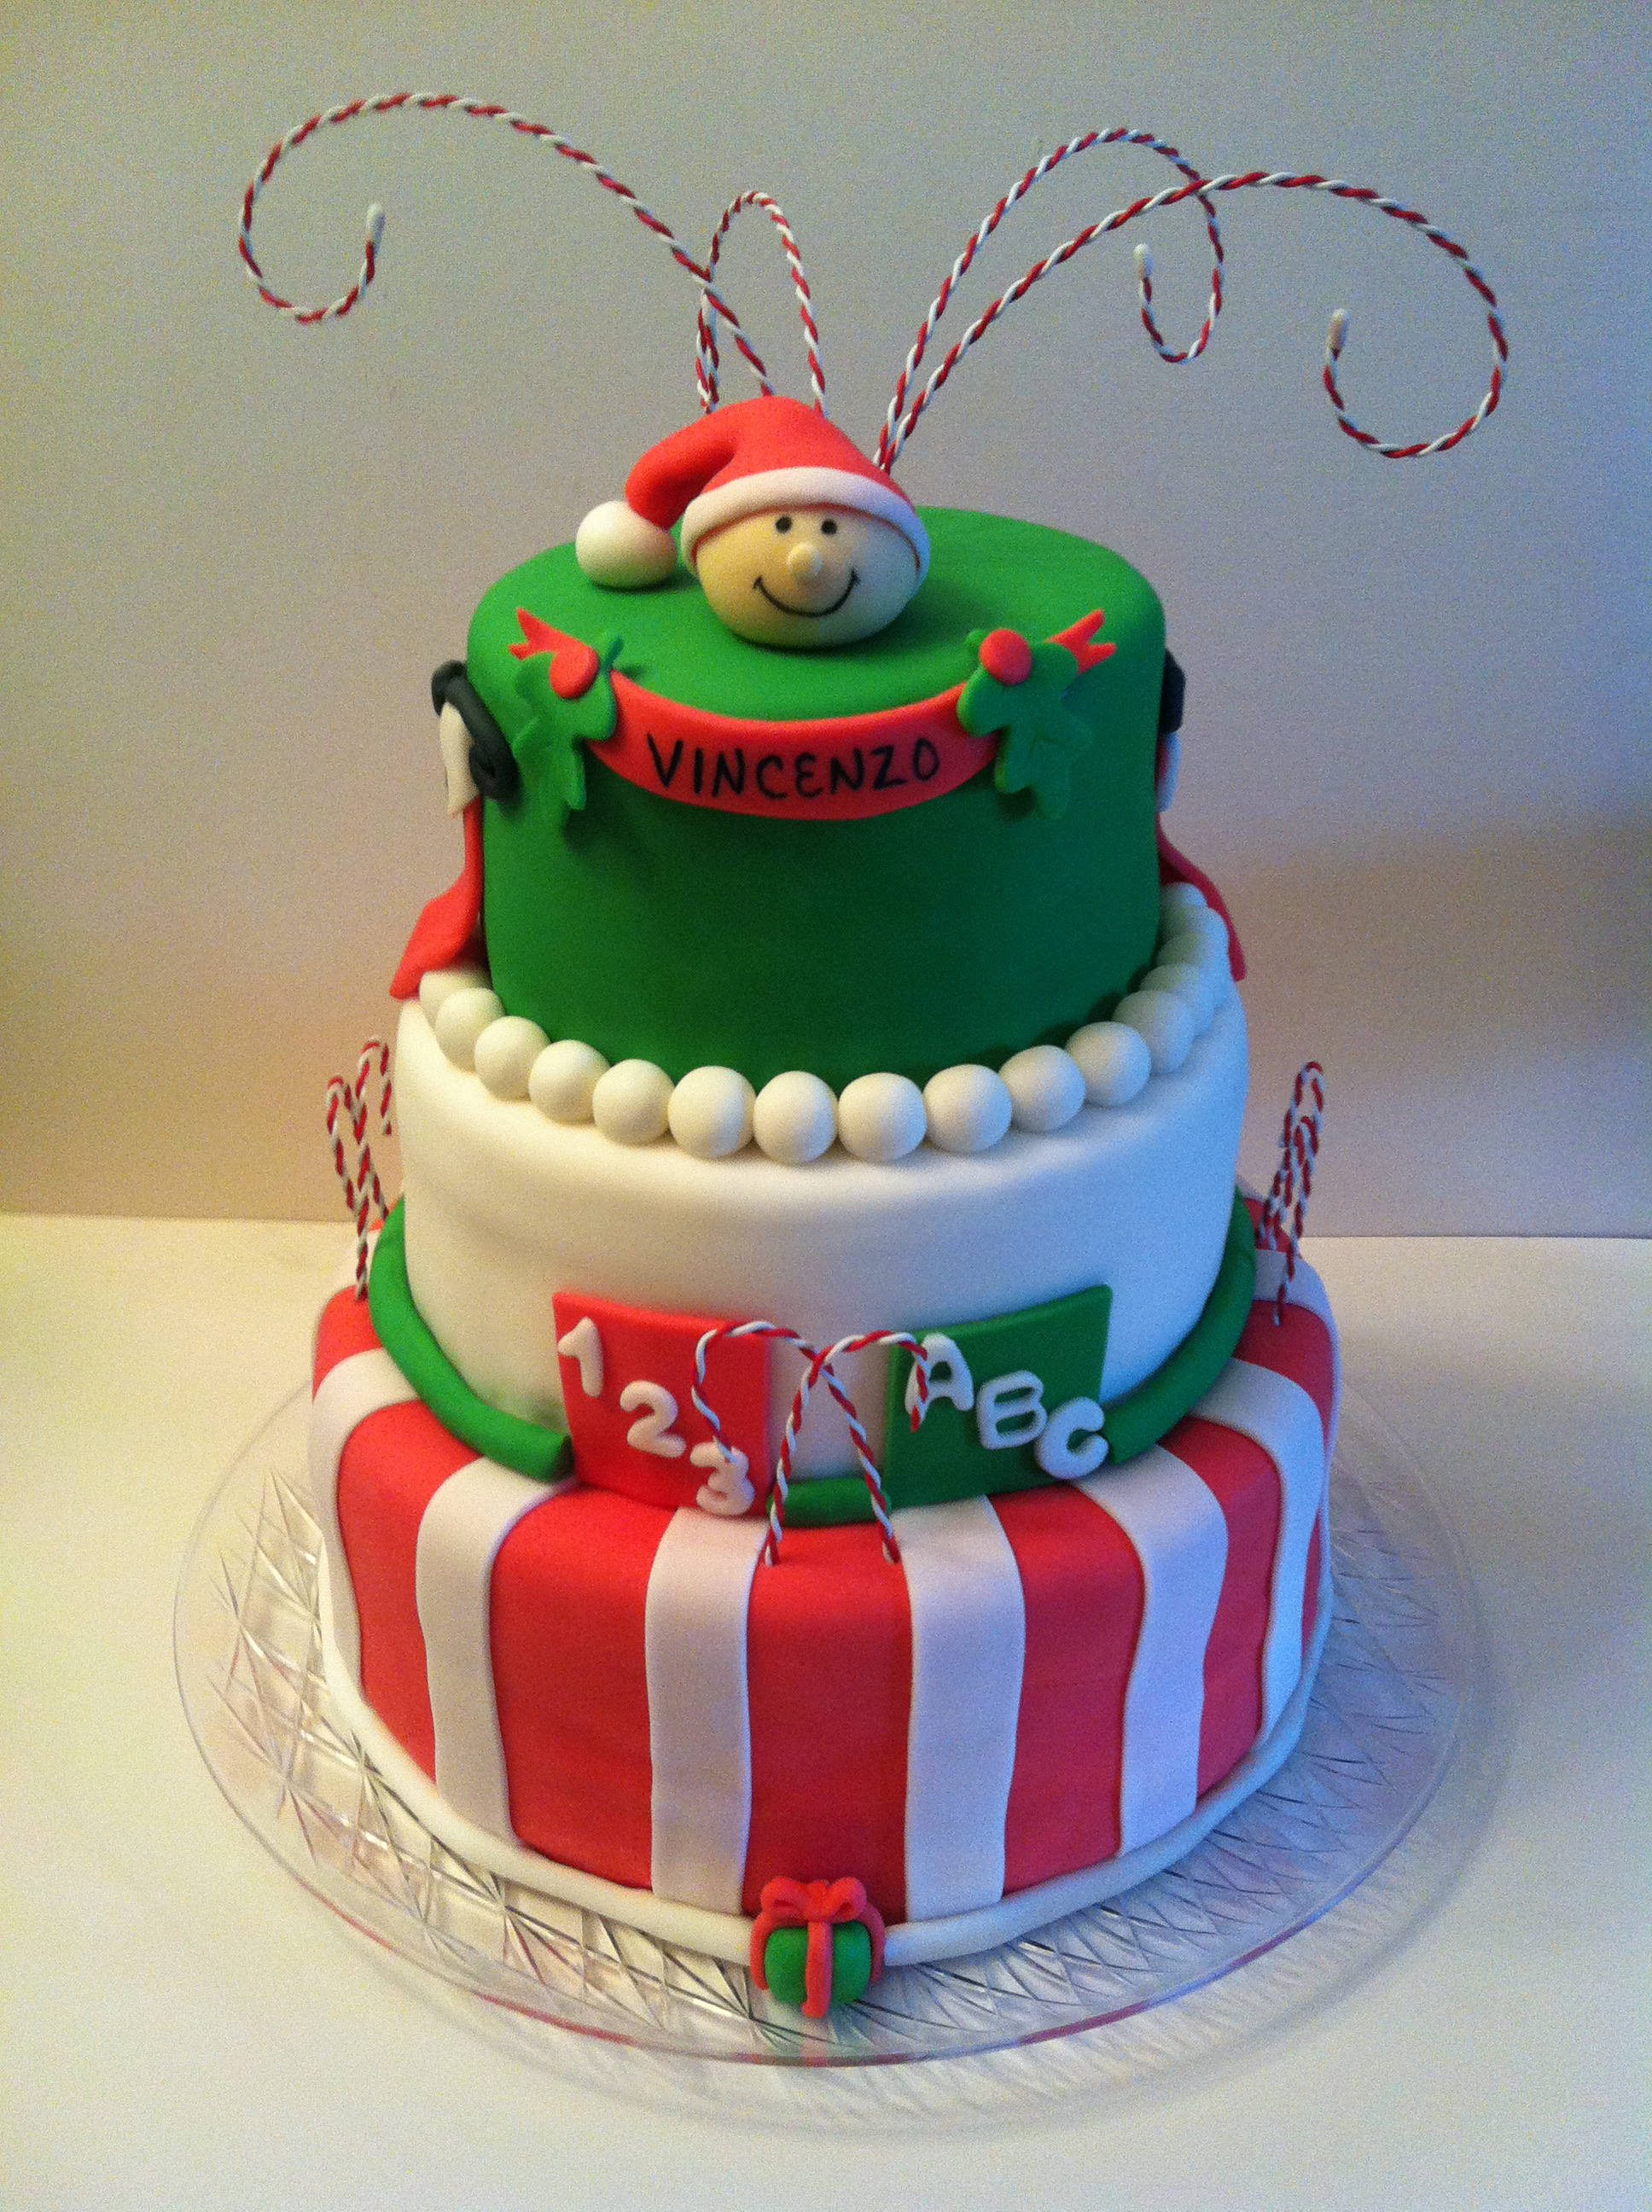 Baby Vincenzo Will Be A Wonderful Gift This Christmas For Many. His Shower  Was Celebrated In Christmas Style With This Three Tiered Cake.